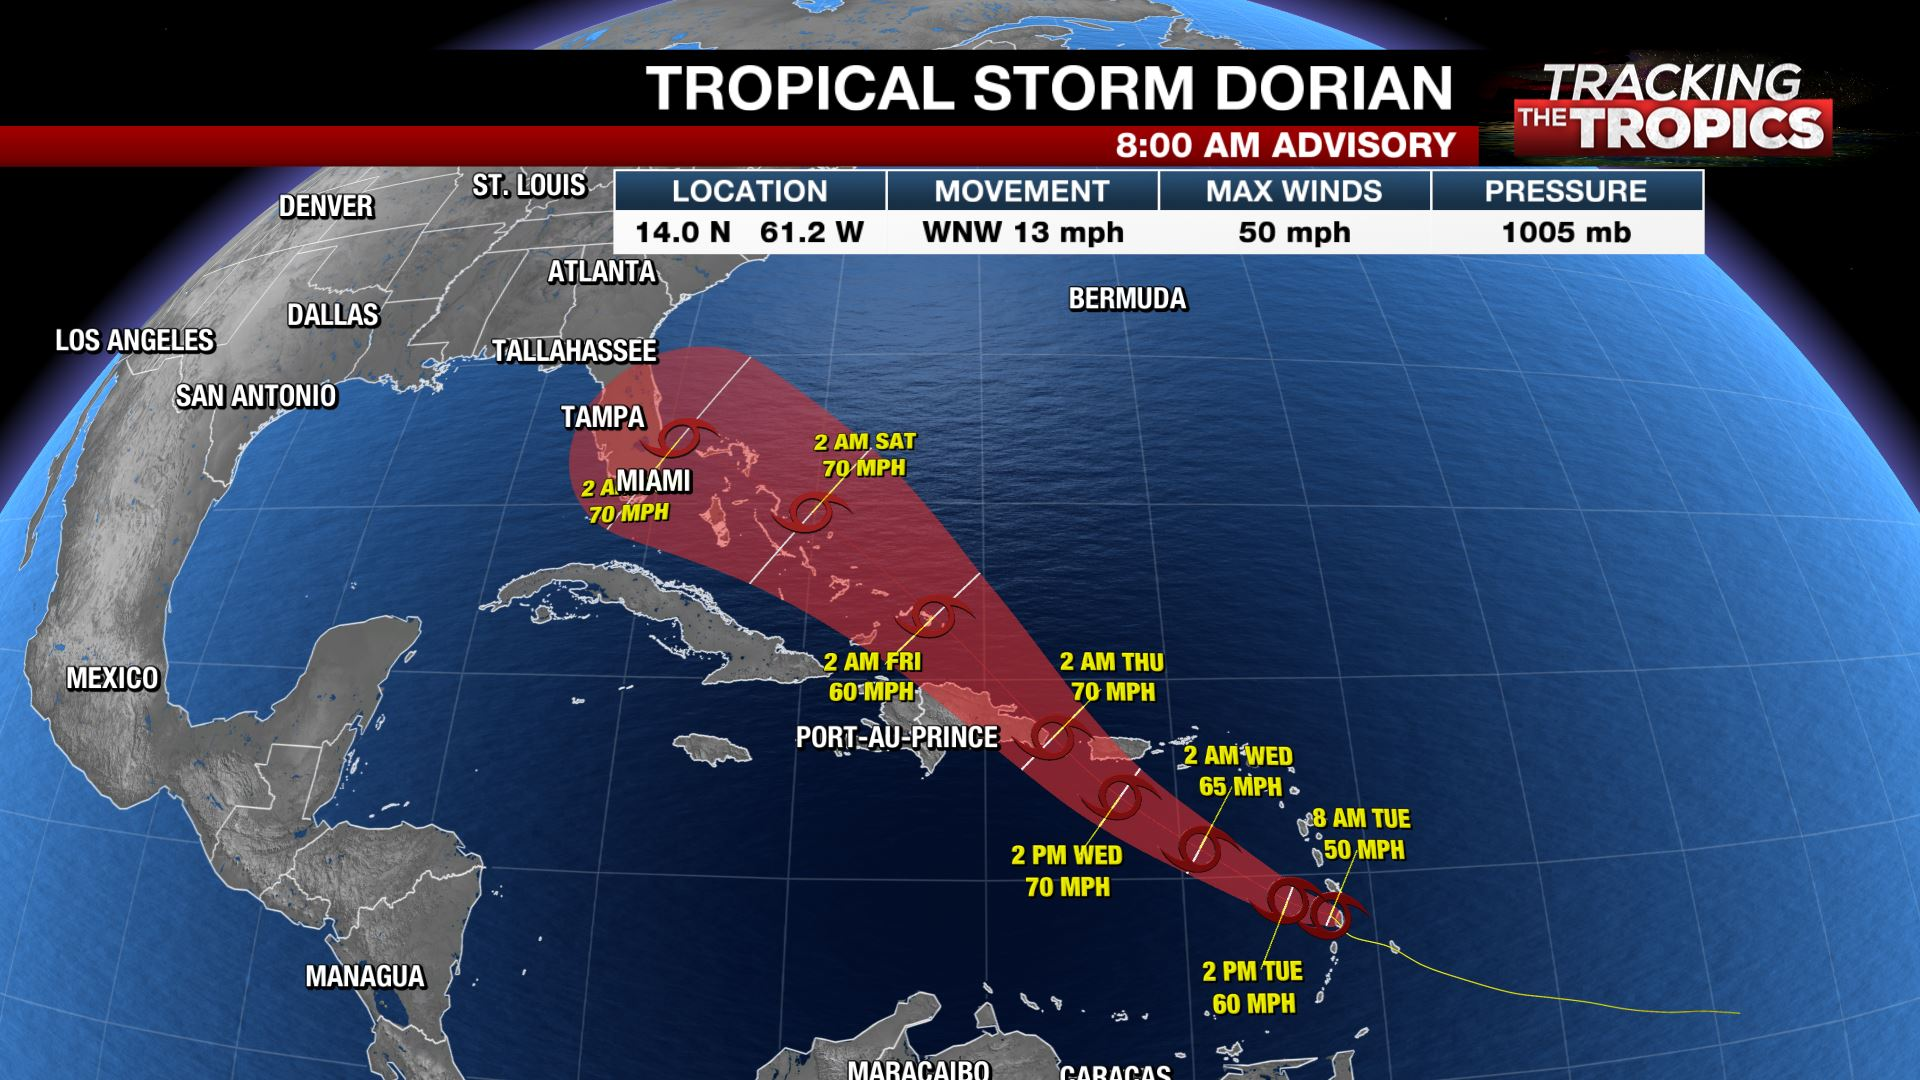 tracking the tropics  all eyes on dorian as it moves into